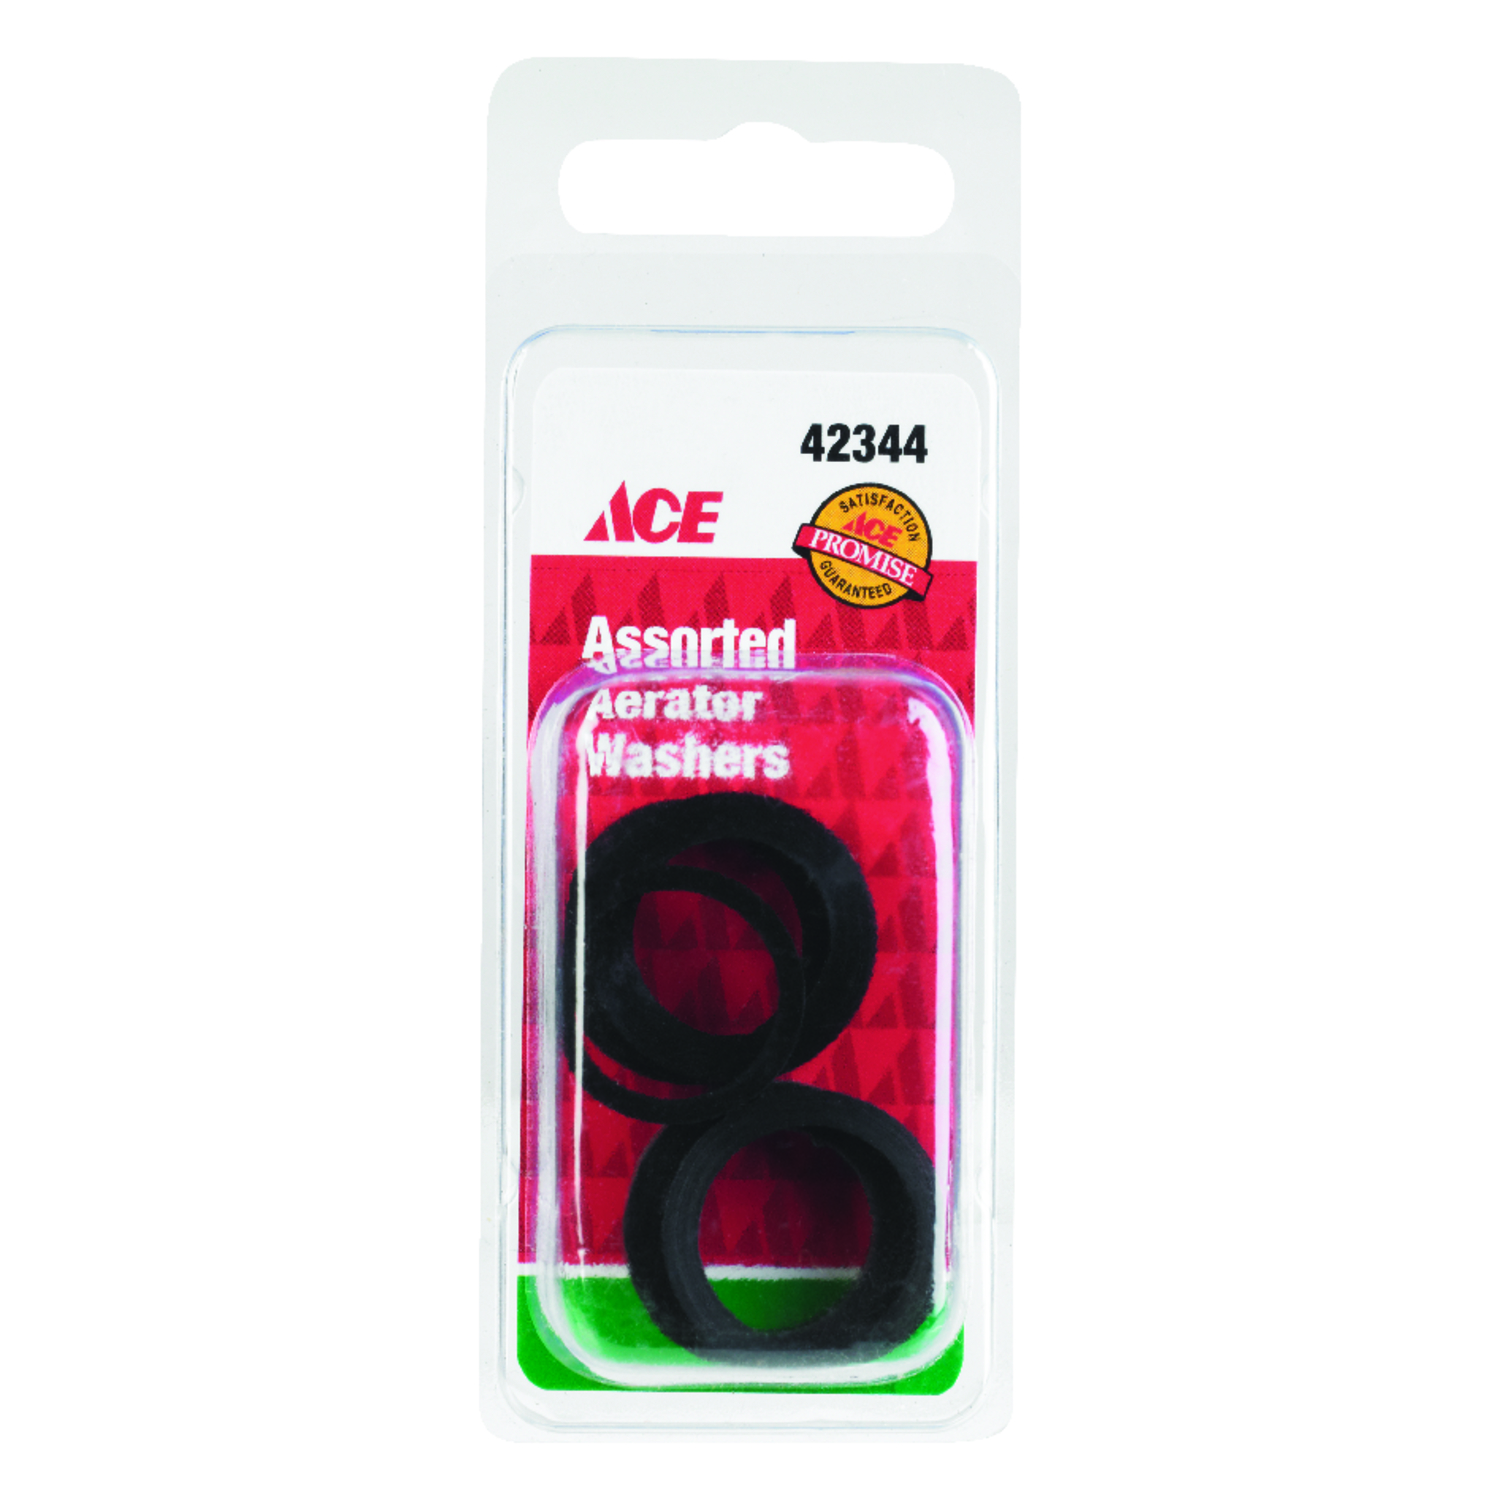 Ace Assorted in. Dia. Rubber Faucet Aerator Washer 5 - Ace Hardware